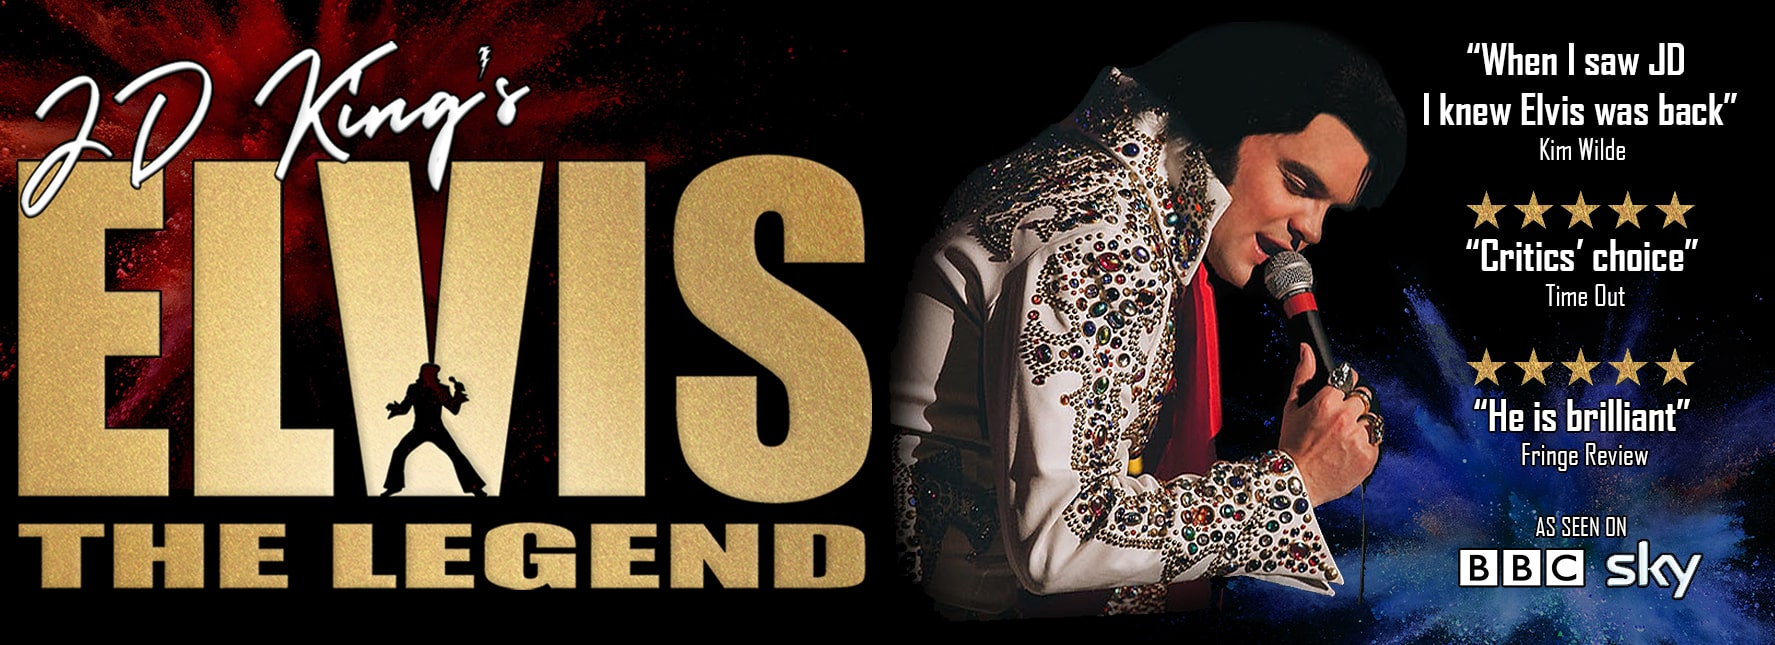 JD King | World Leading Elvis Tribute Artist & Impersonator